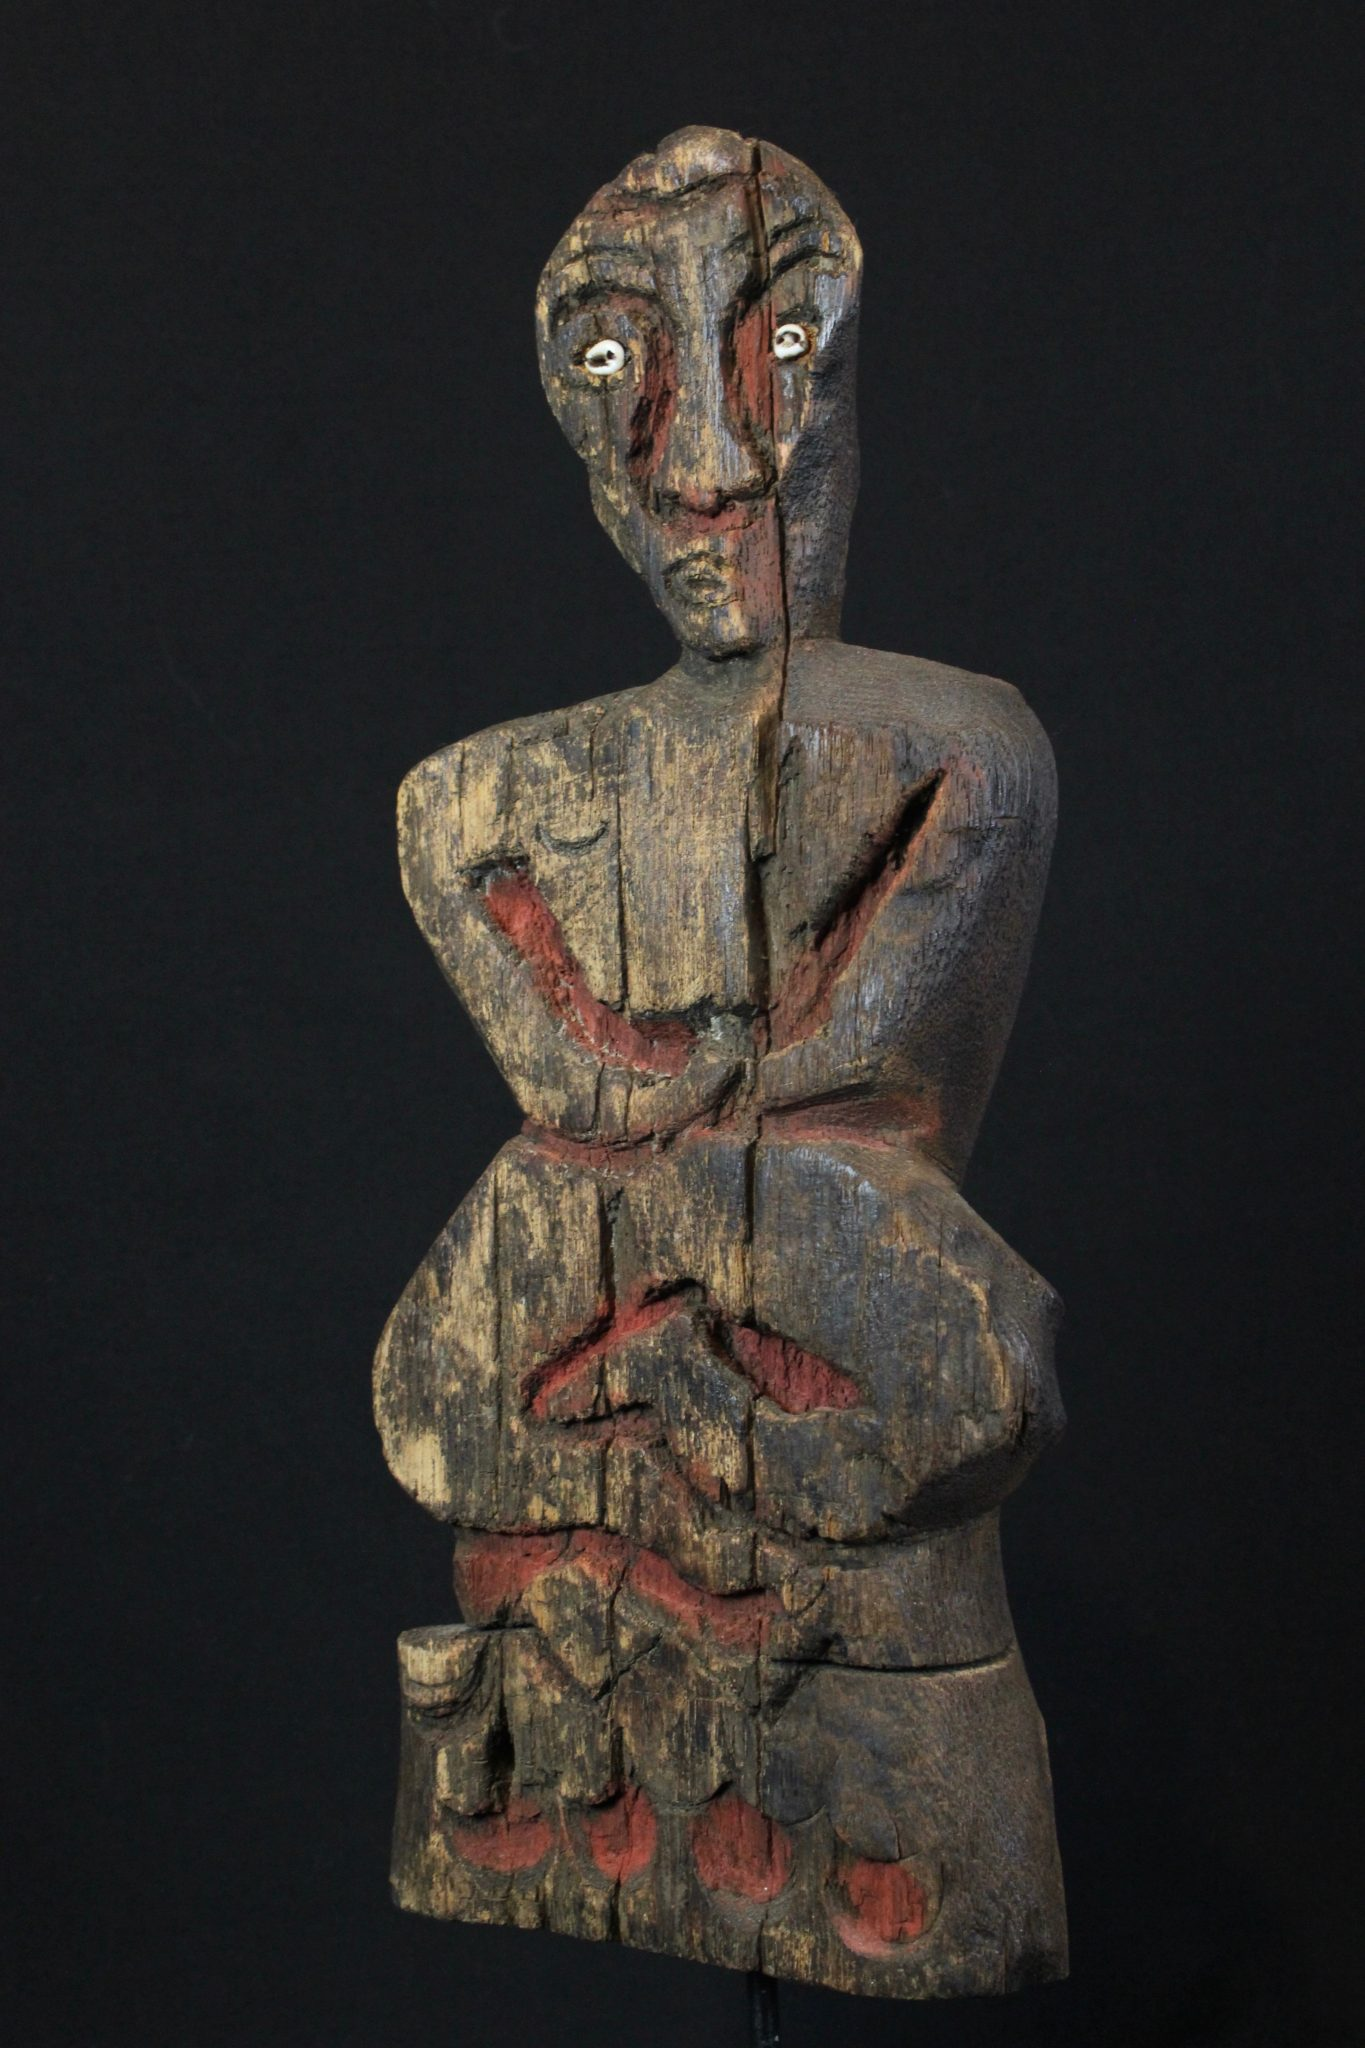 """Shaman Effigy Figure, Nagaland, India, Naga tribe, Early 20th c, Wood, pigment, shell, Probably for calling spirits as well as for use in healing rituals There are 7 images on the back of creatures made by poking holes as an outline for each one. 14"""" x 5 ¾"""" x 2 ¾"""", Sold"""